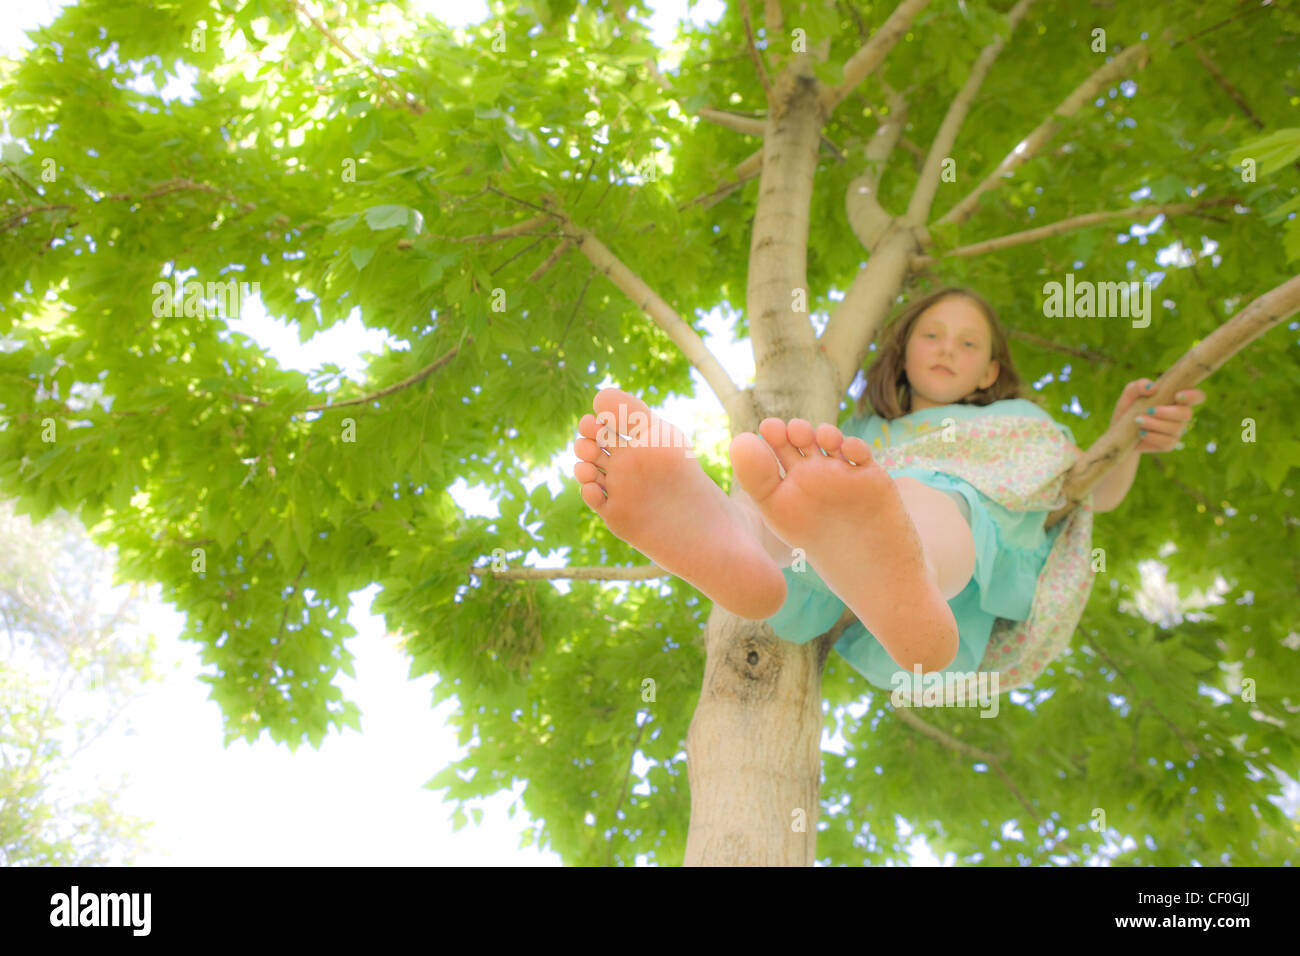 Girl resting in a tree, Spring, dreamy. - Stock Image